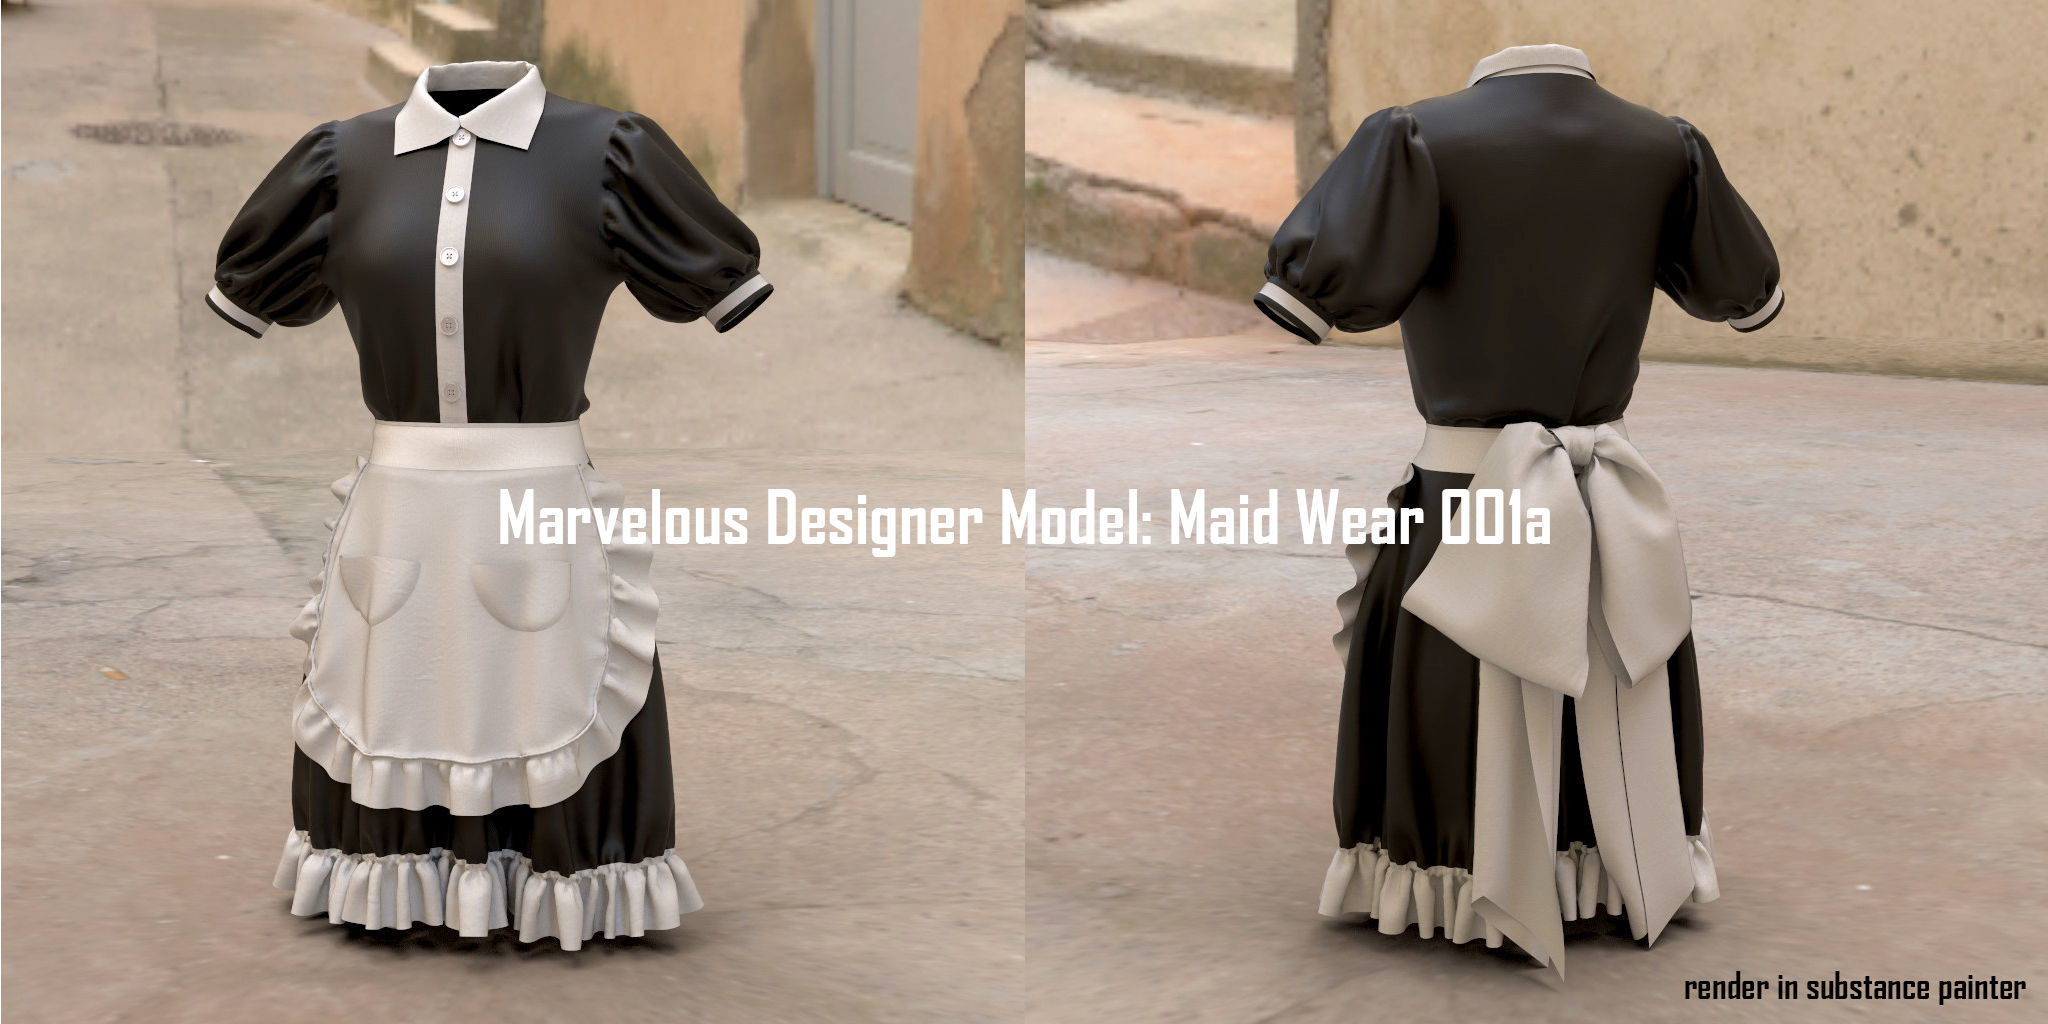 Marvelous Designer Model Maid Wear 001a